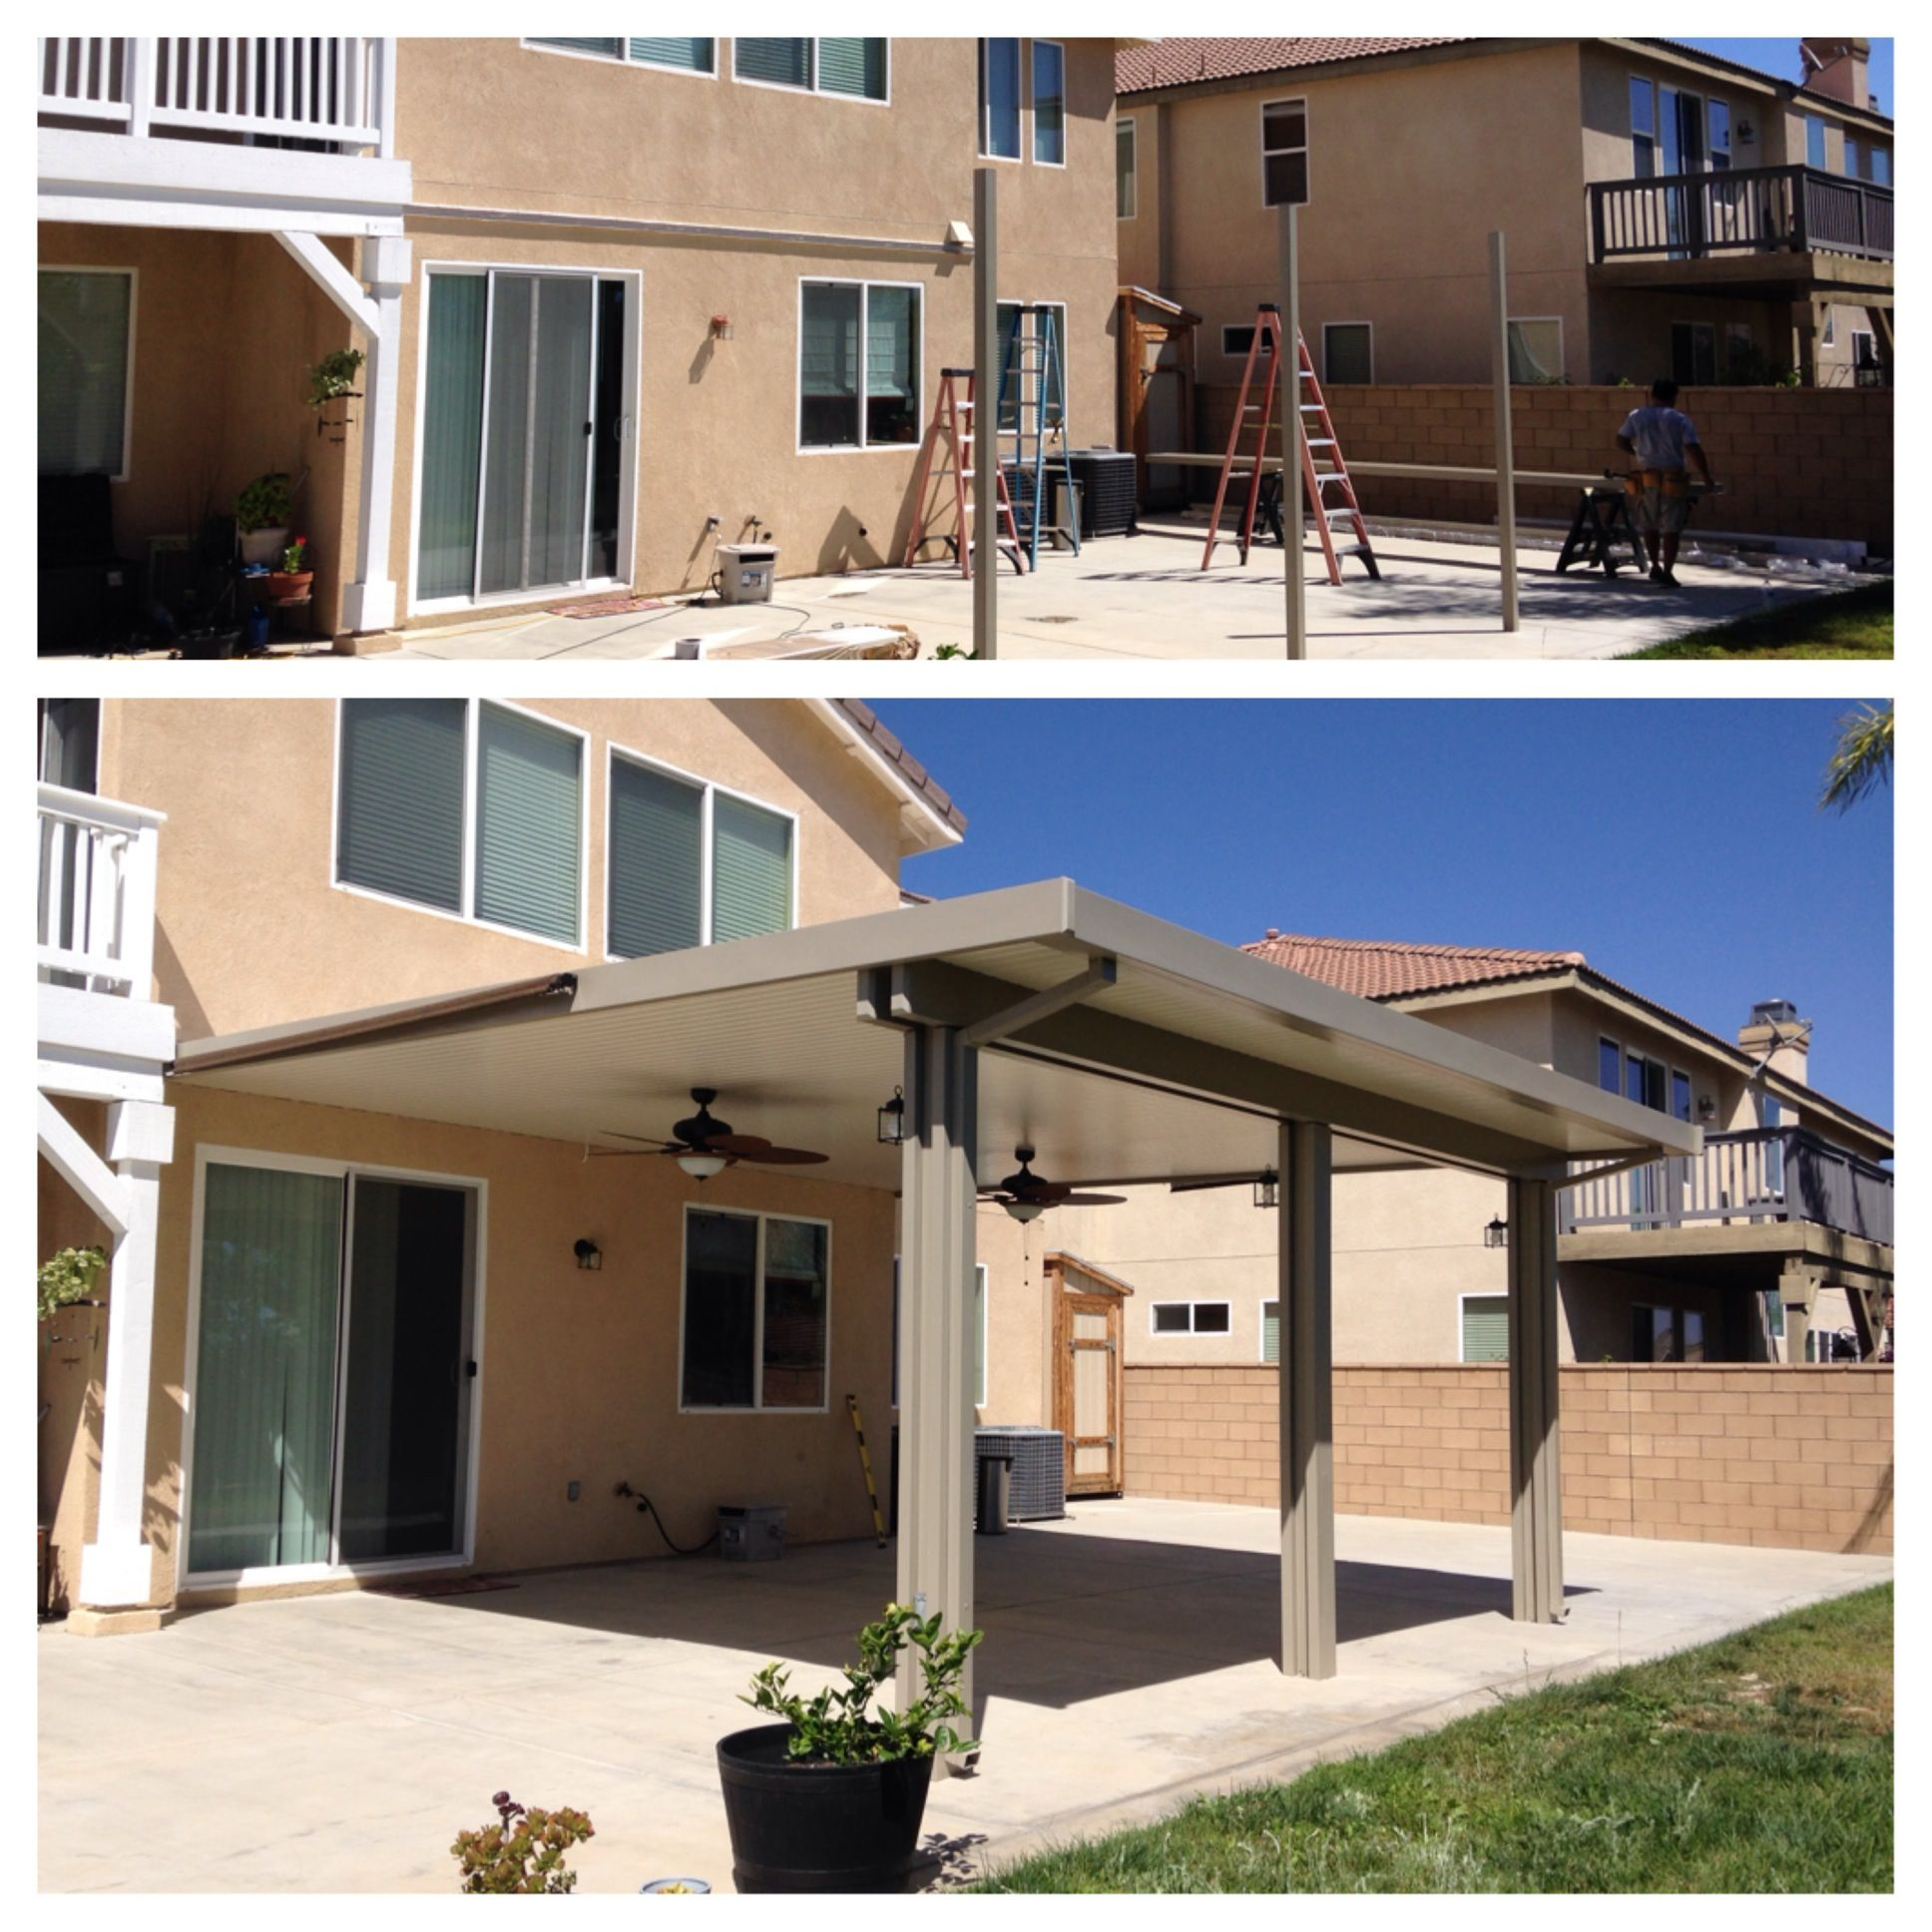 Before And After Construction Of An Aluminum Patio Cover intended for sizing 1936 X 1936